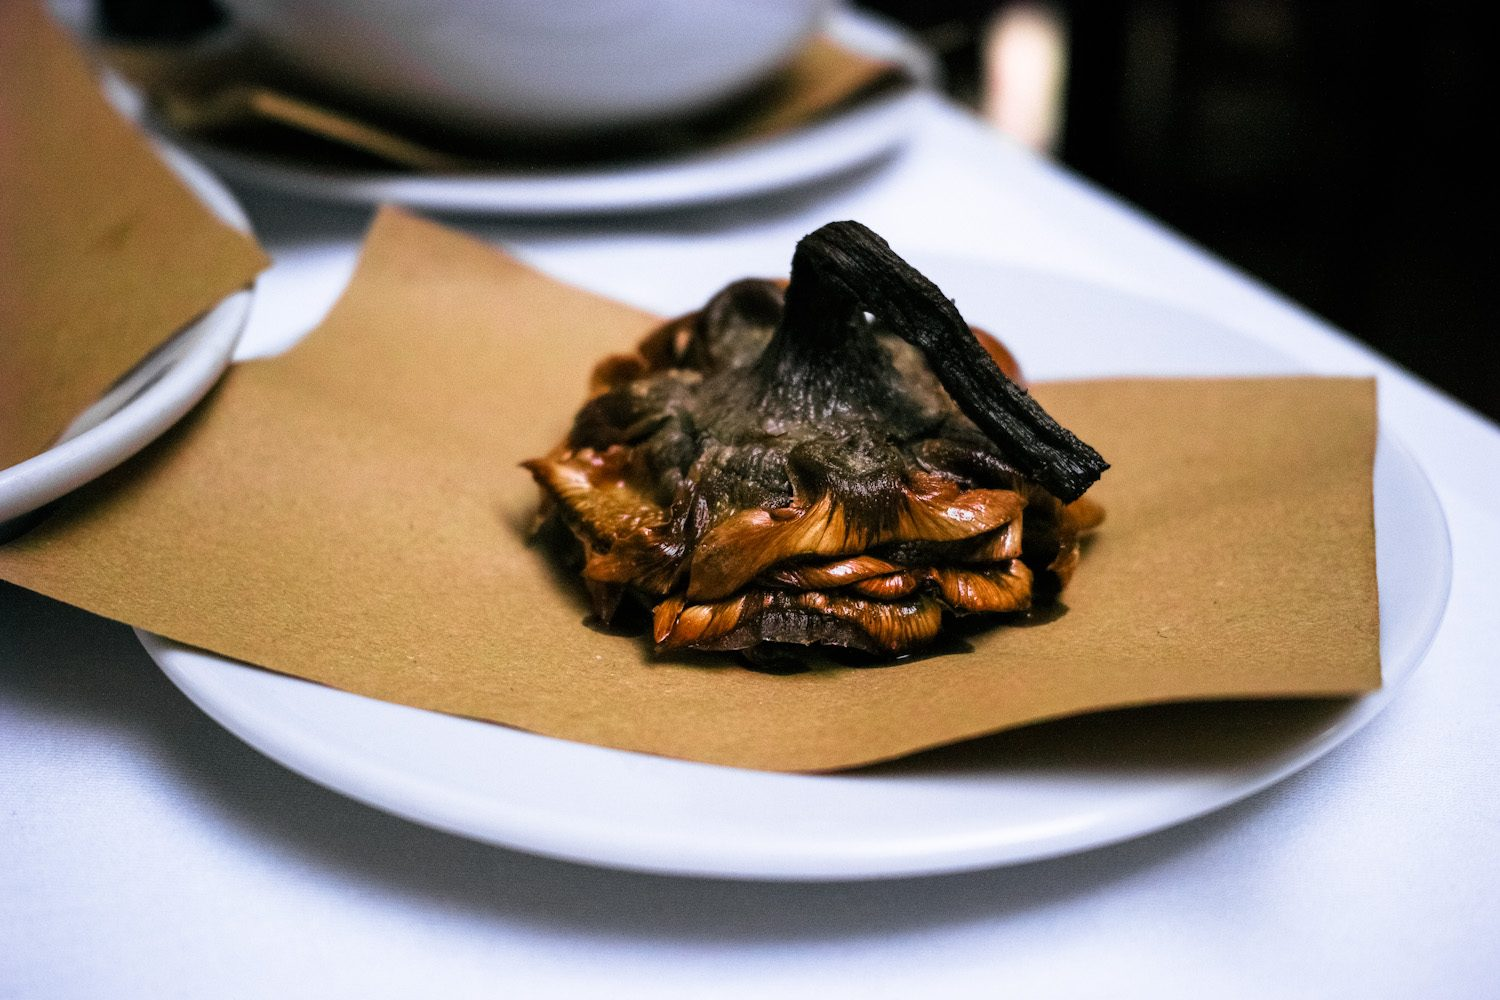 food_rome_italy_thevoyageur (1)